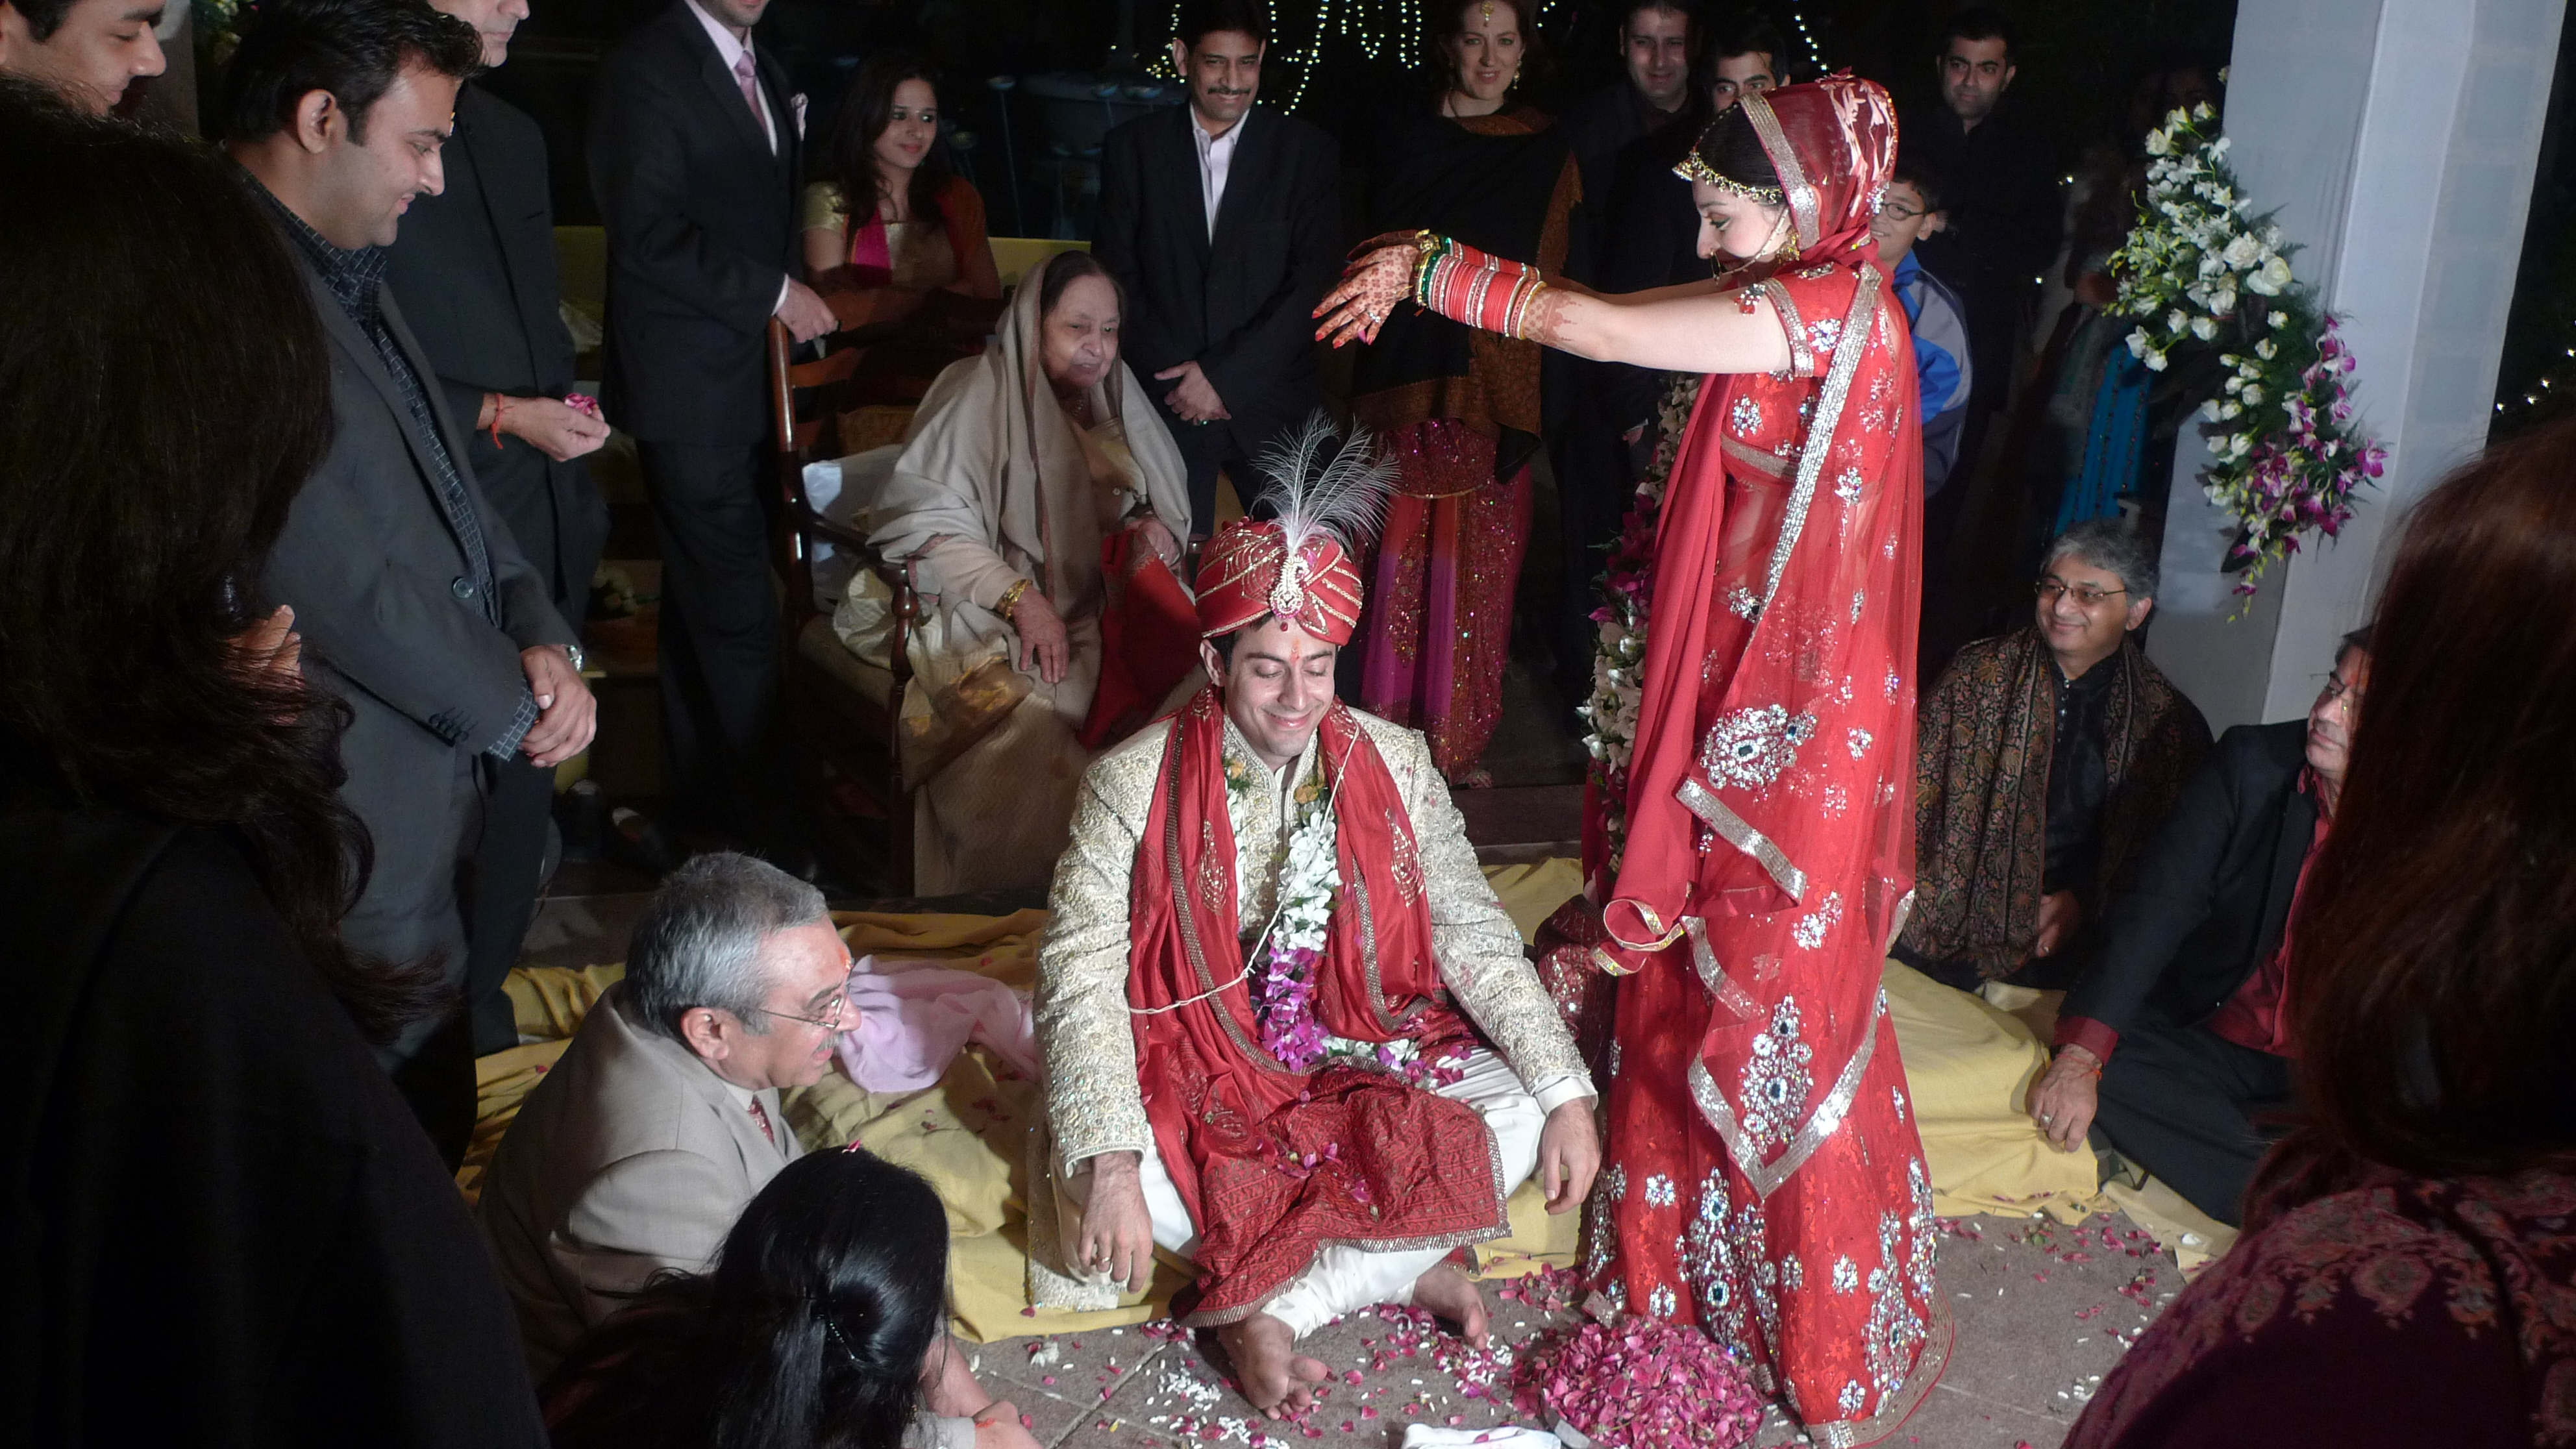 essay on an indian wedding ceremony A short hindu wedding ceremony traditional hindu wedding ceremonies can last for days and involve much ritual in wear what you would wear to a non-indian wedding.